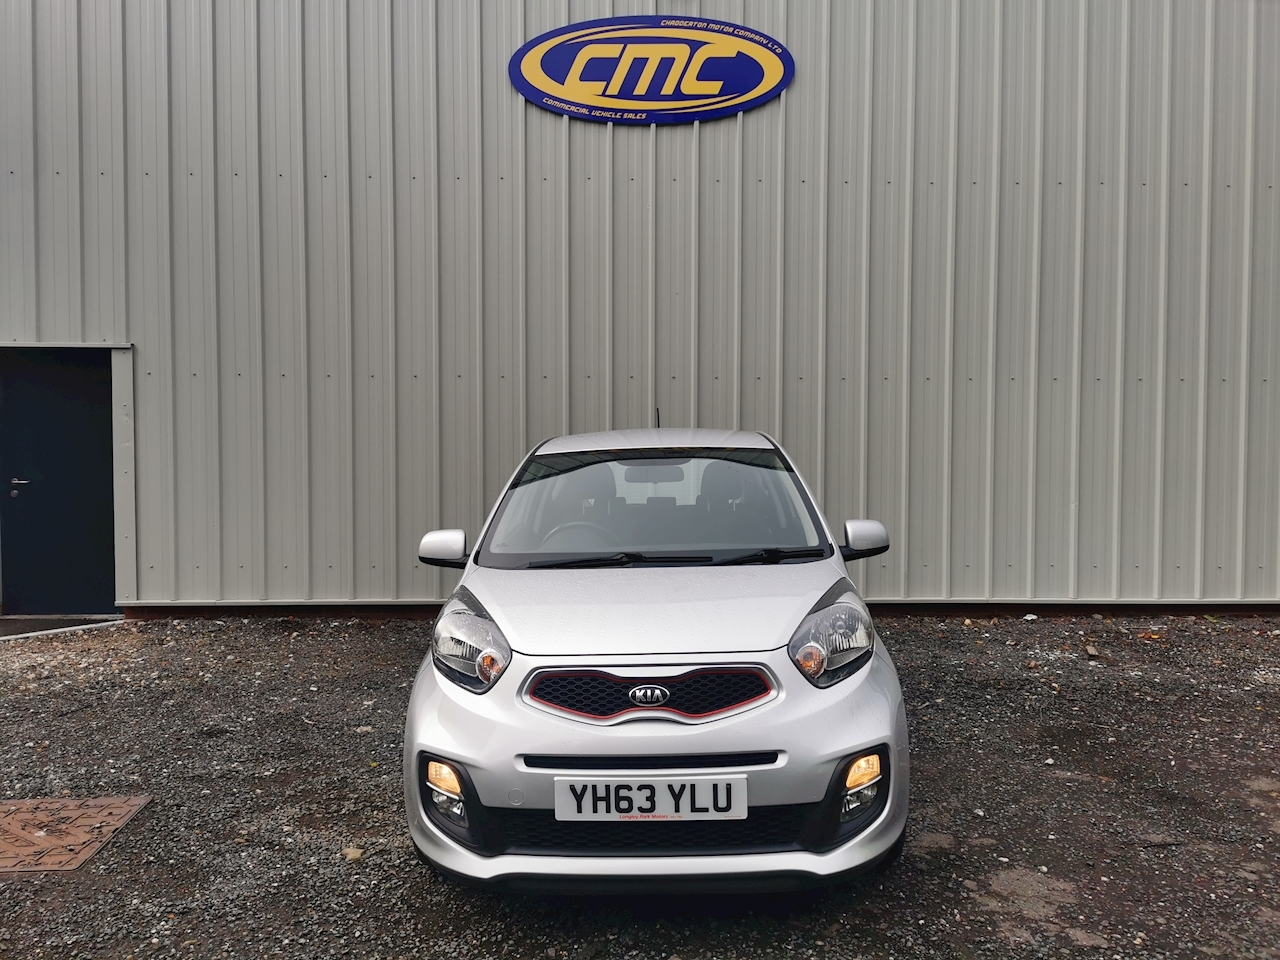 Kia Picanto City Hatchback 1.0 Manual Petrol